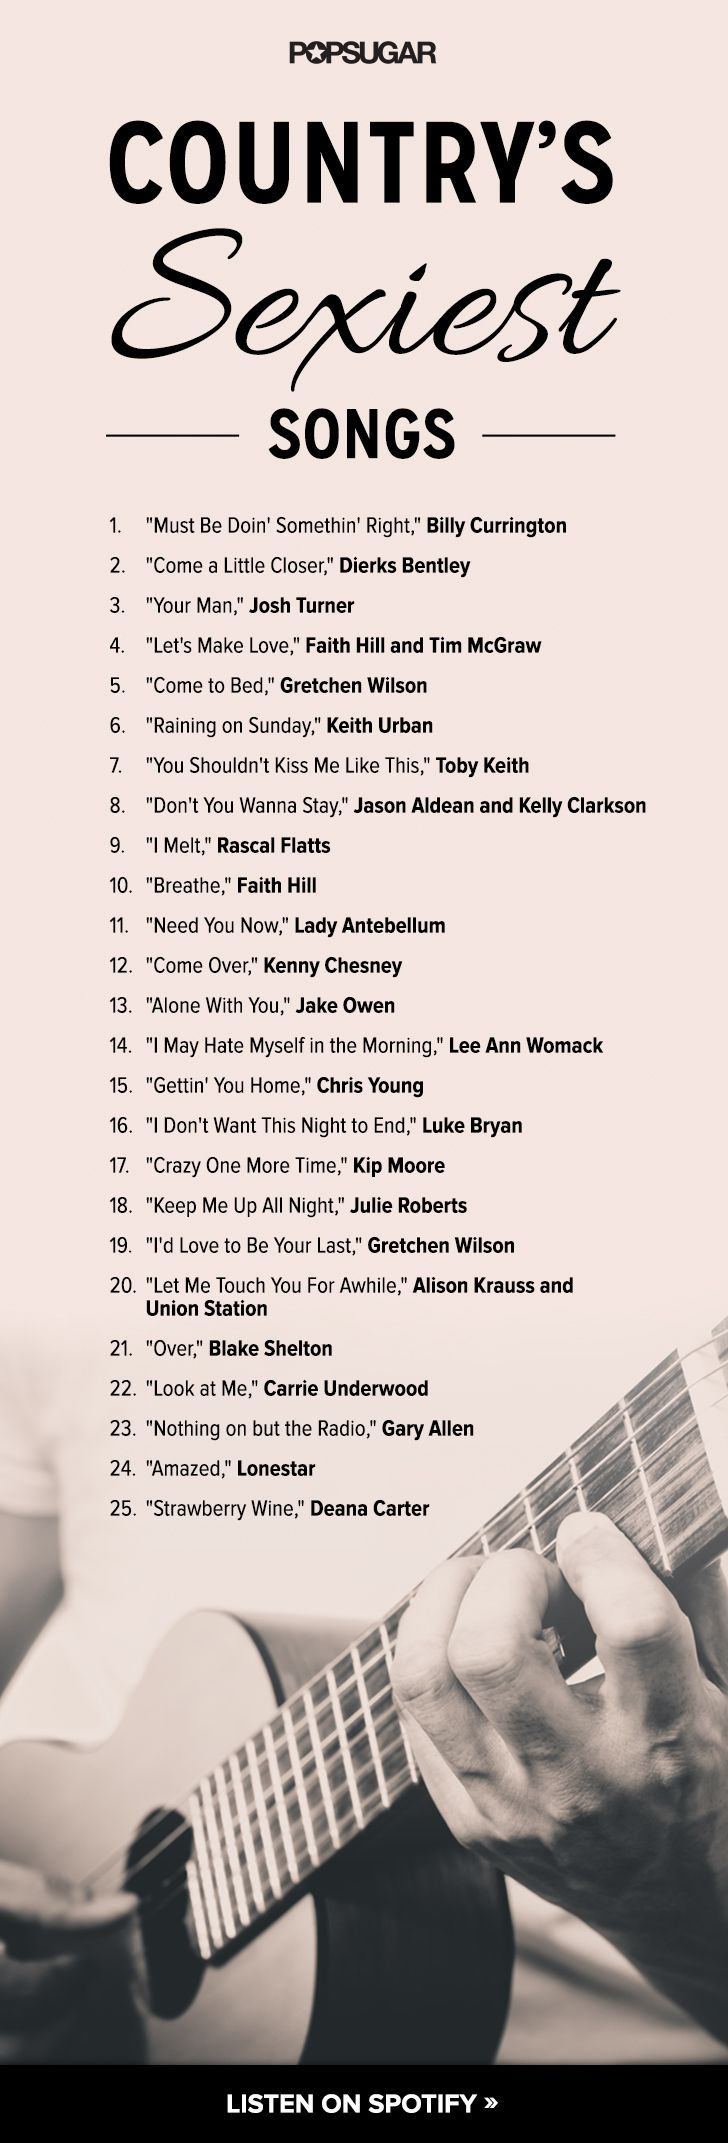 The sexiest country songs — good list